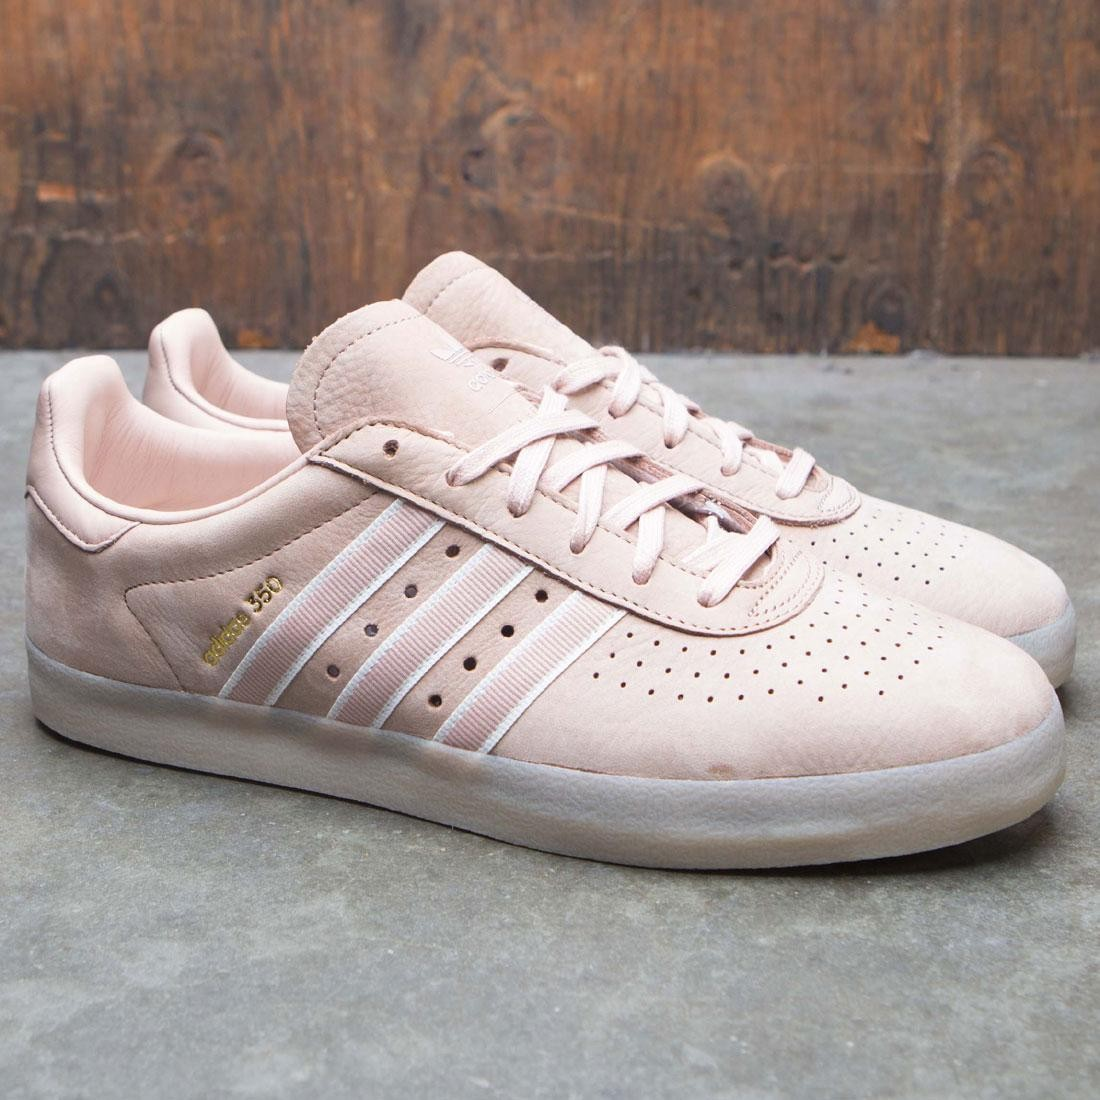 finest selection 3694b fd23a Adidas Men Oyster Holdings Adidas 350 (pink / ash pearl / chalk white /  metallic gold)